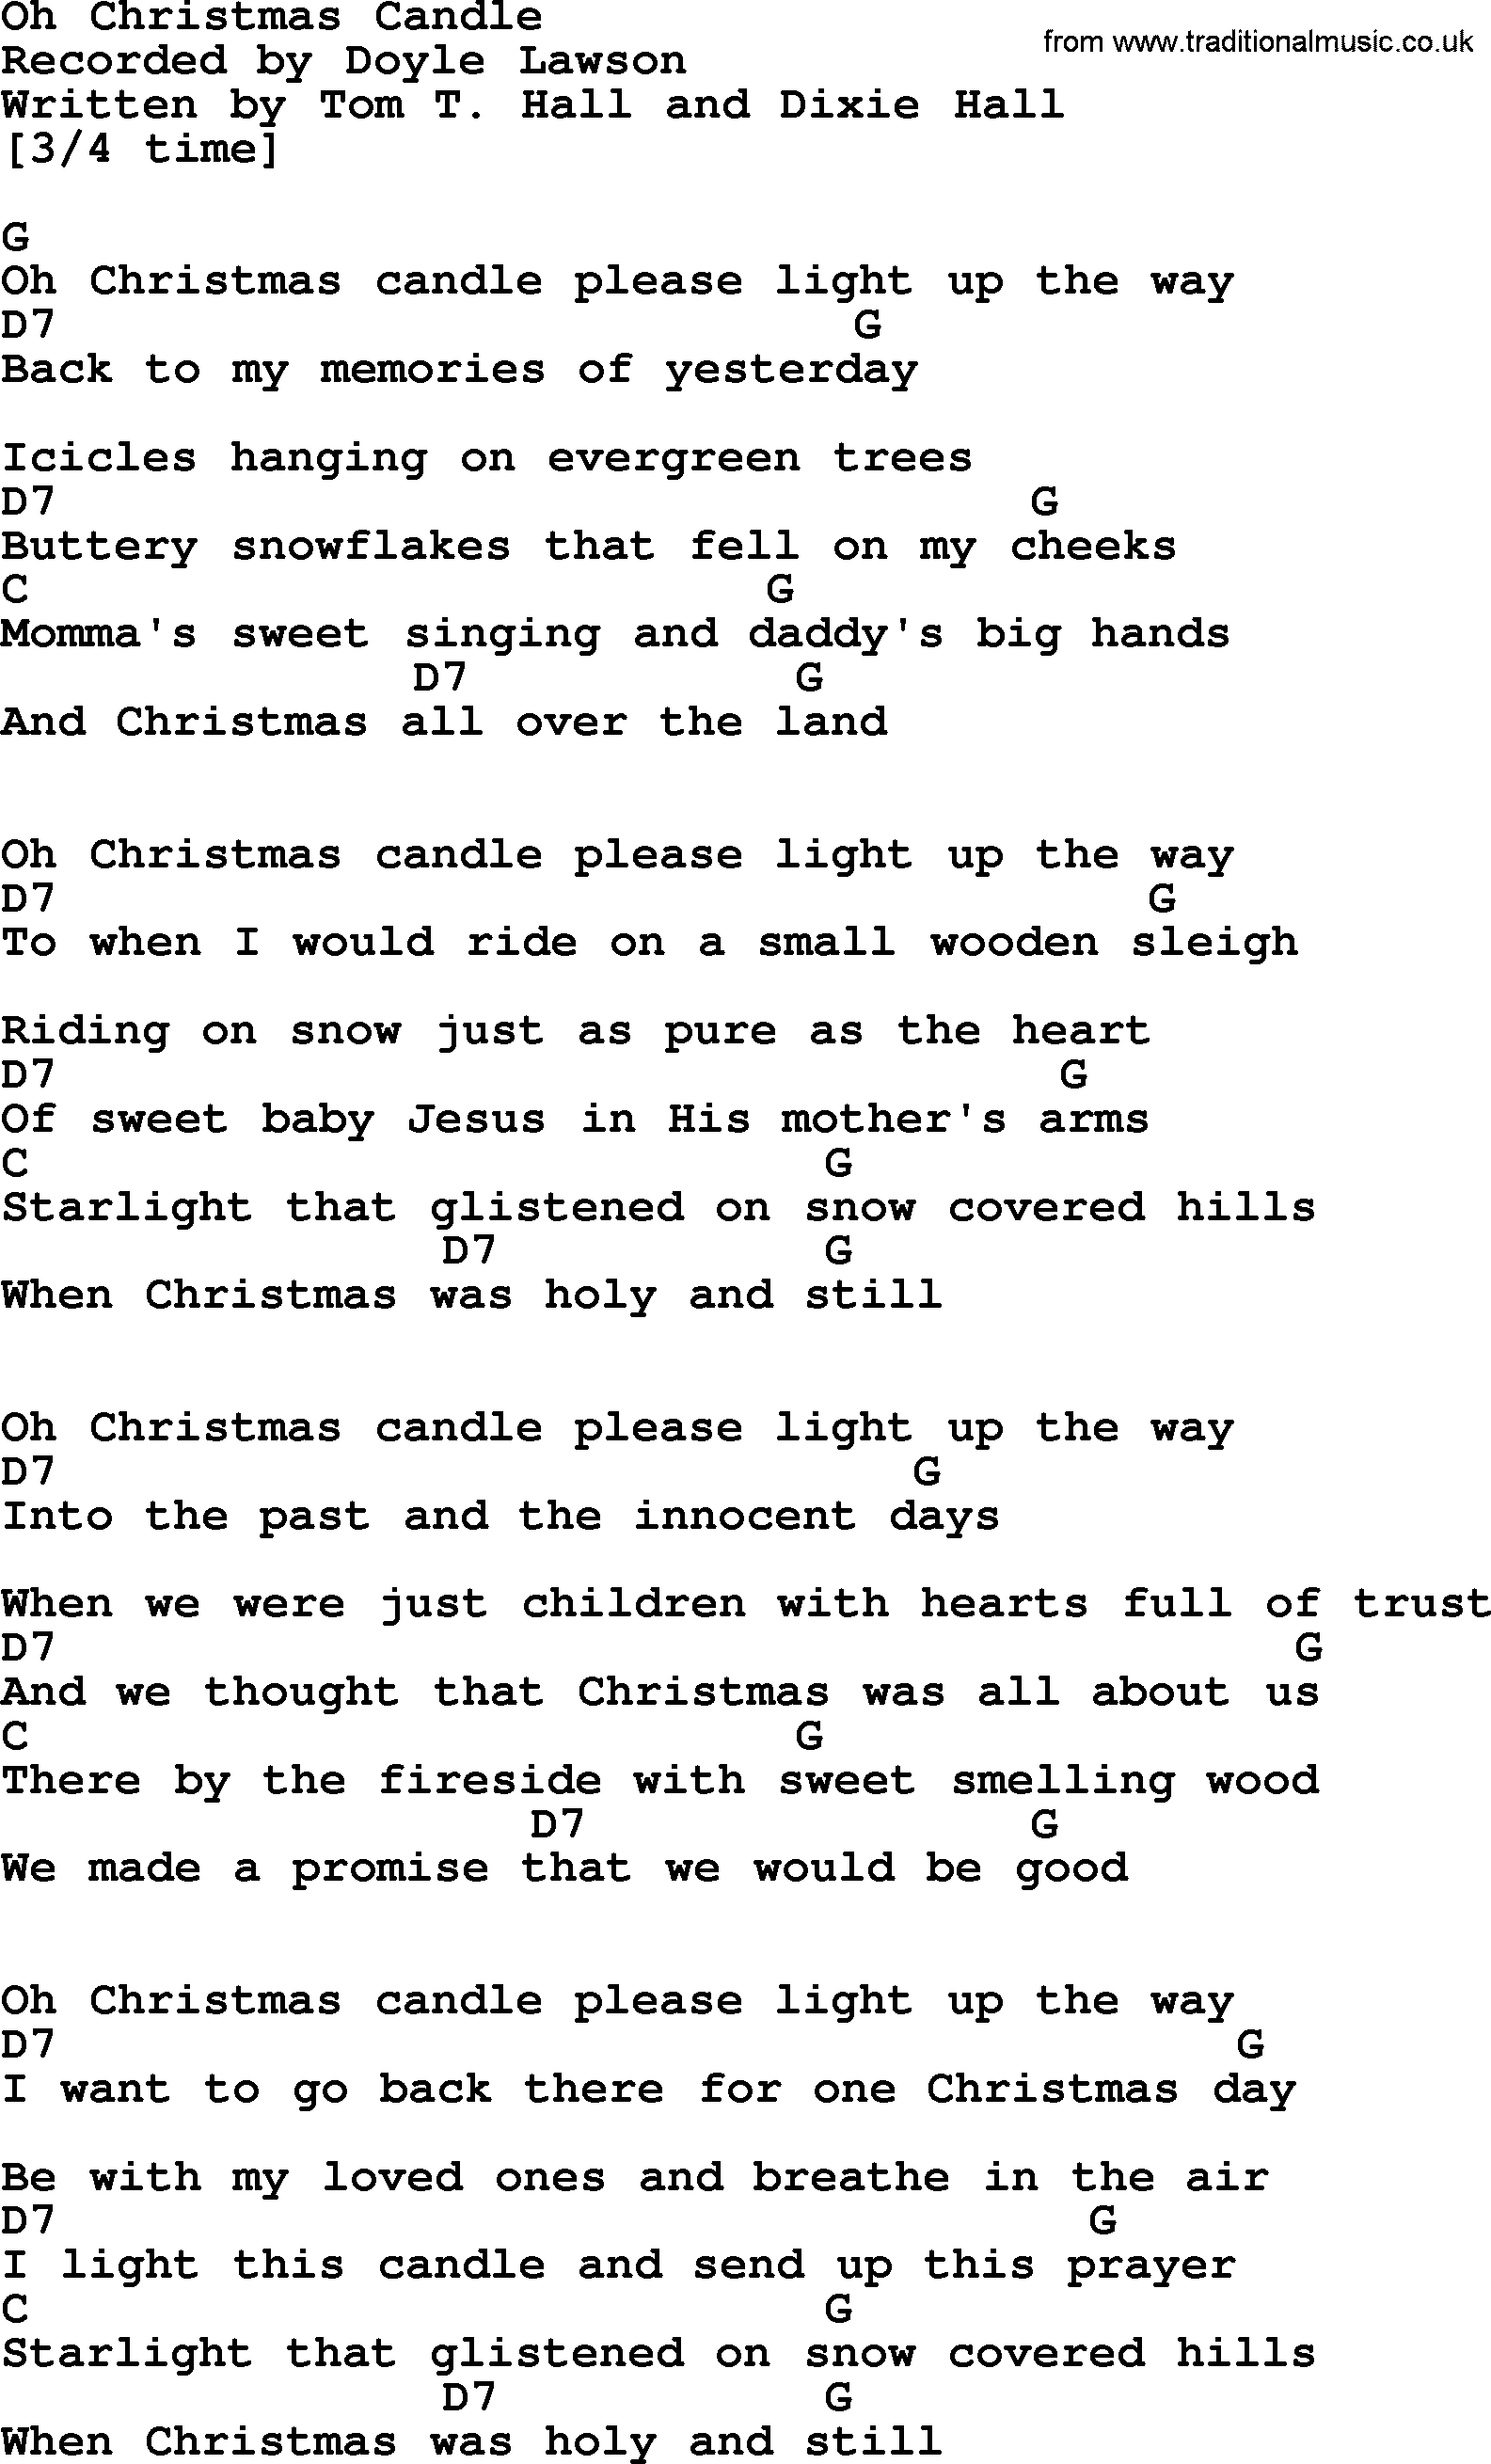 Oh christmas candle bluegrass lyrics with chords bluegrass song oh christmas candle lyrics and chords hexwebz Choice Image